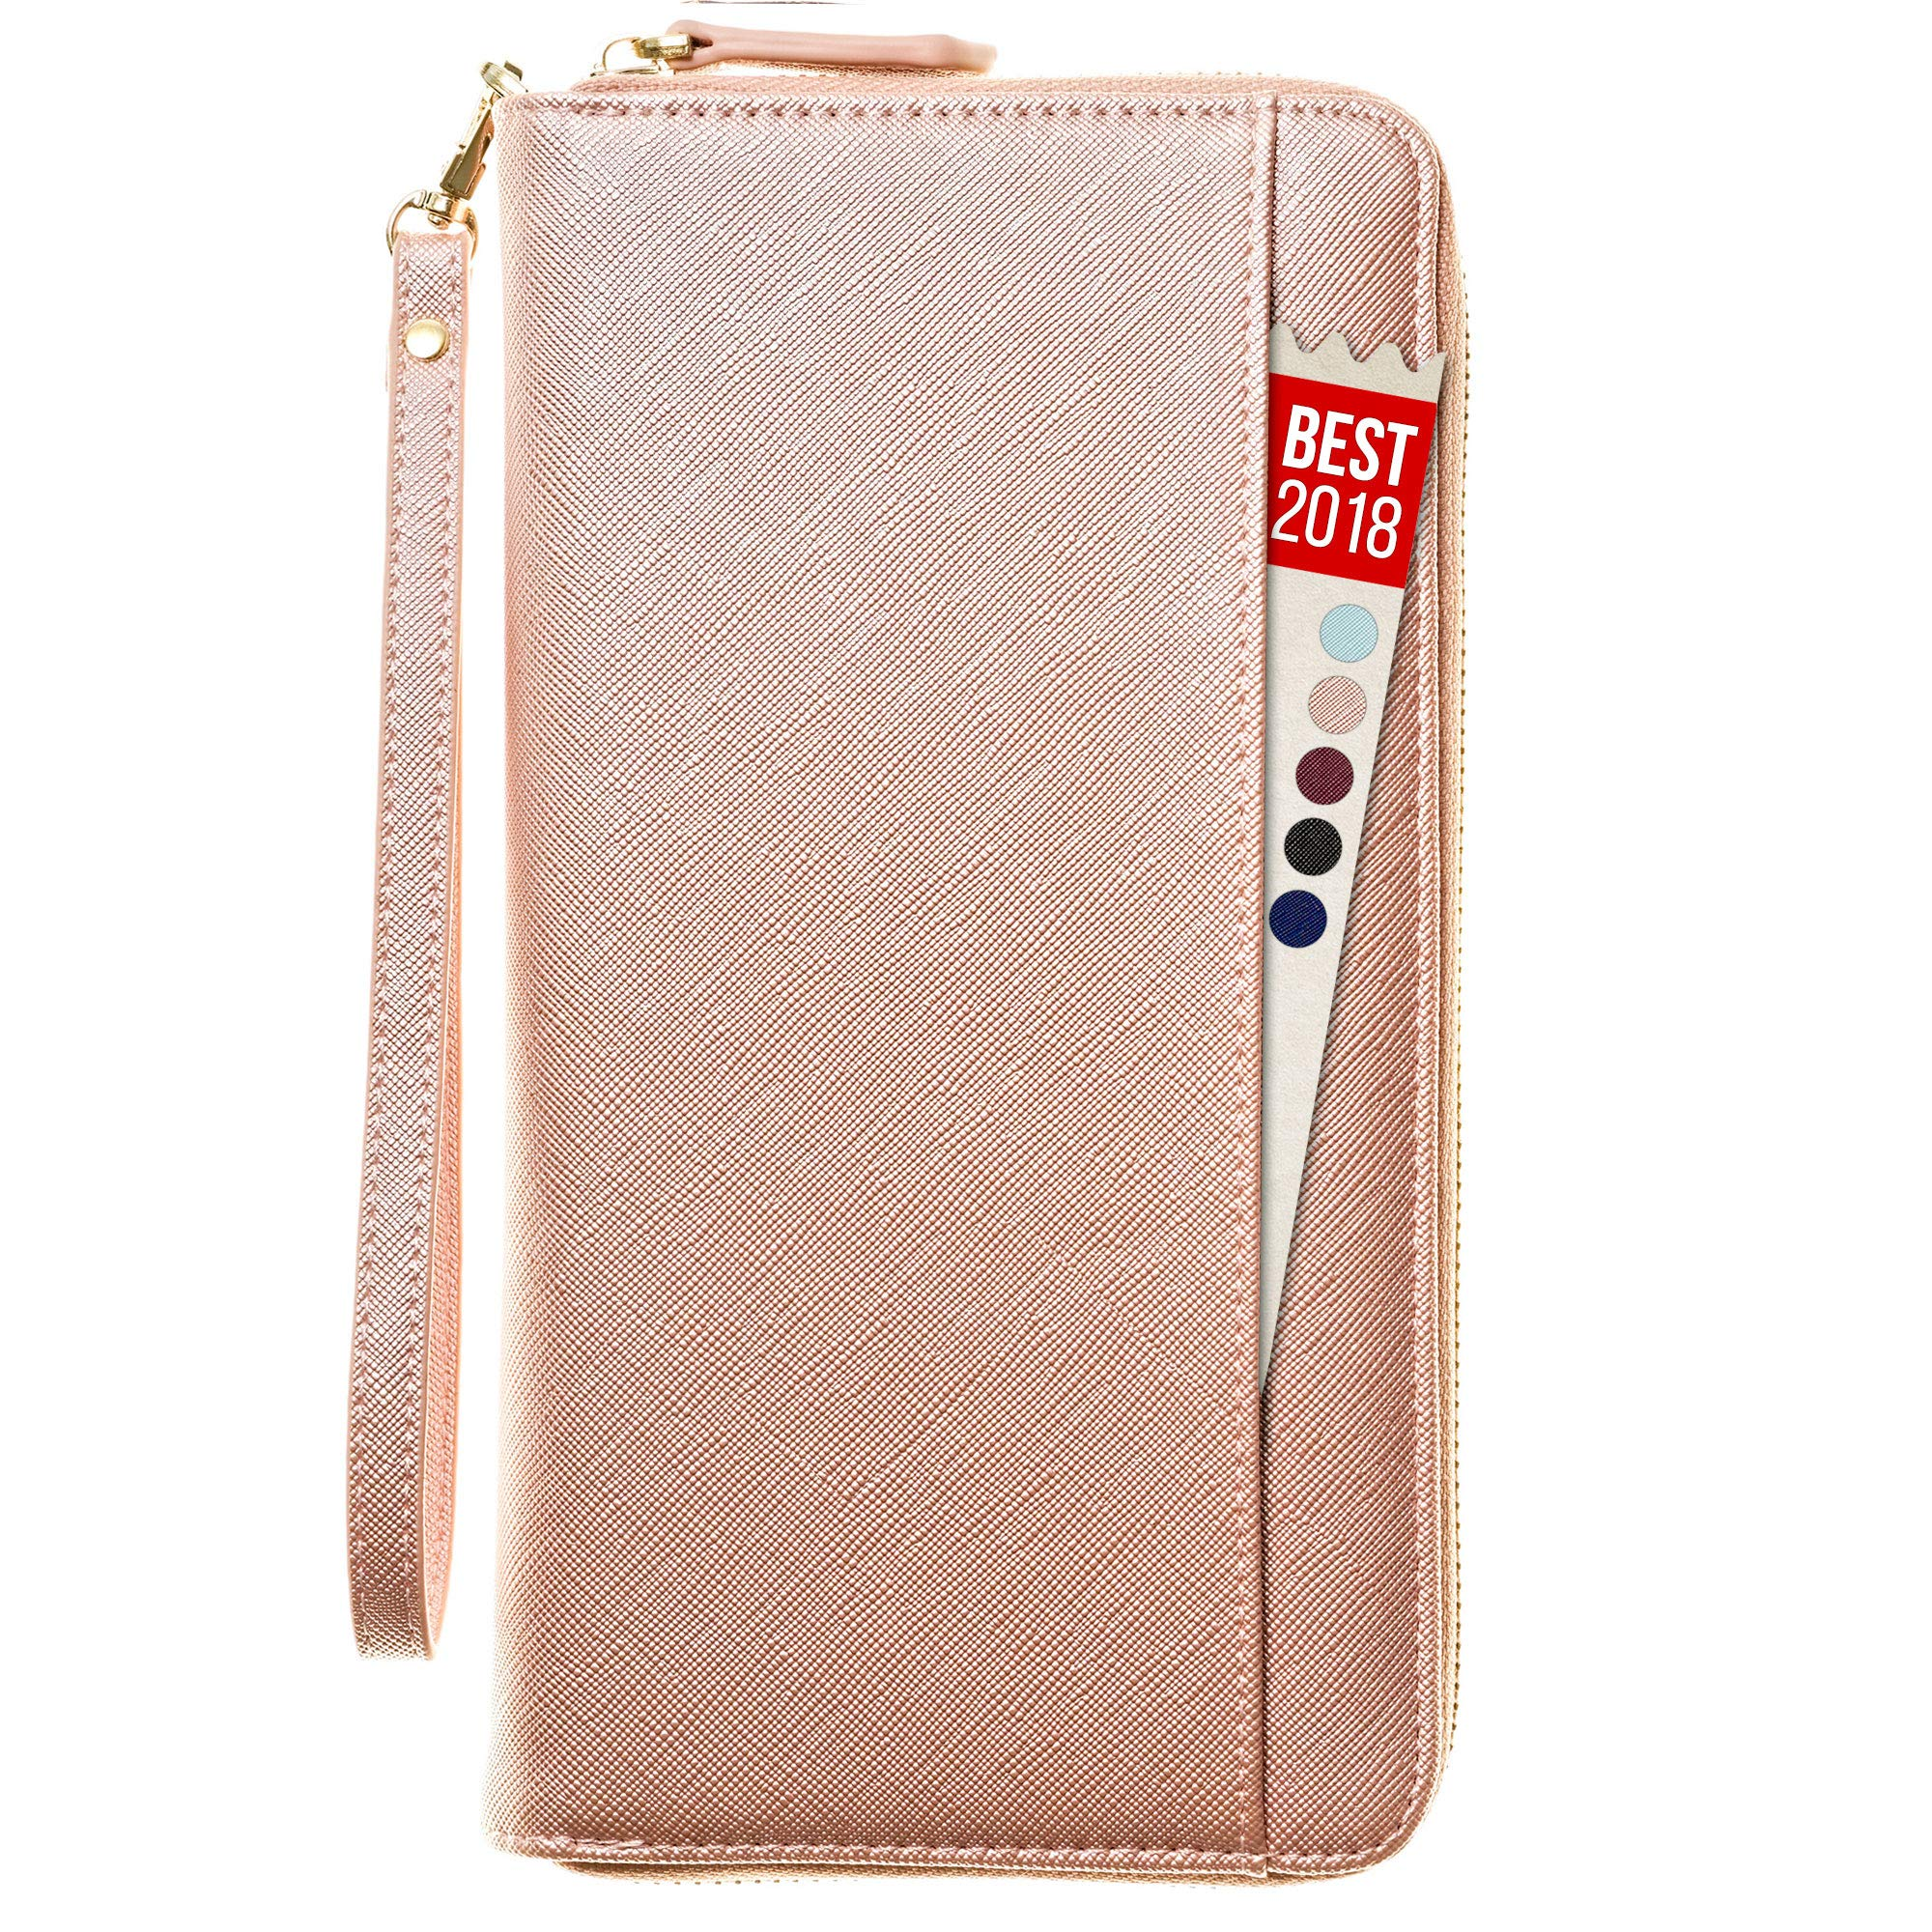 Travel Document Organizer - RFID Passport Wallet Case Family Holder Id Wristlet (Rose Gold)